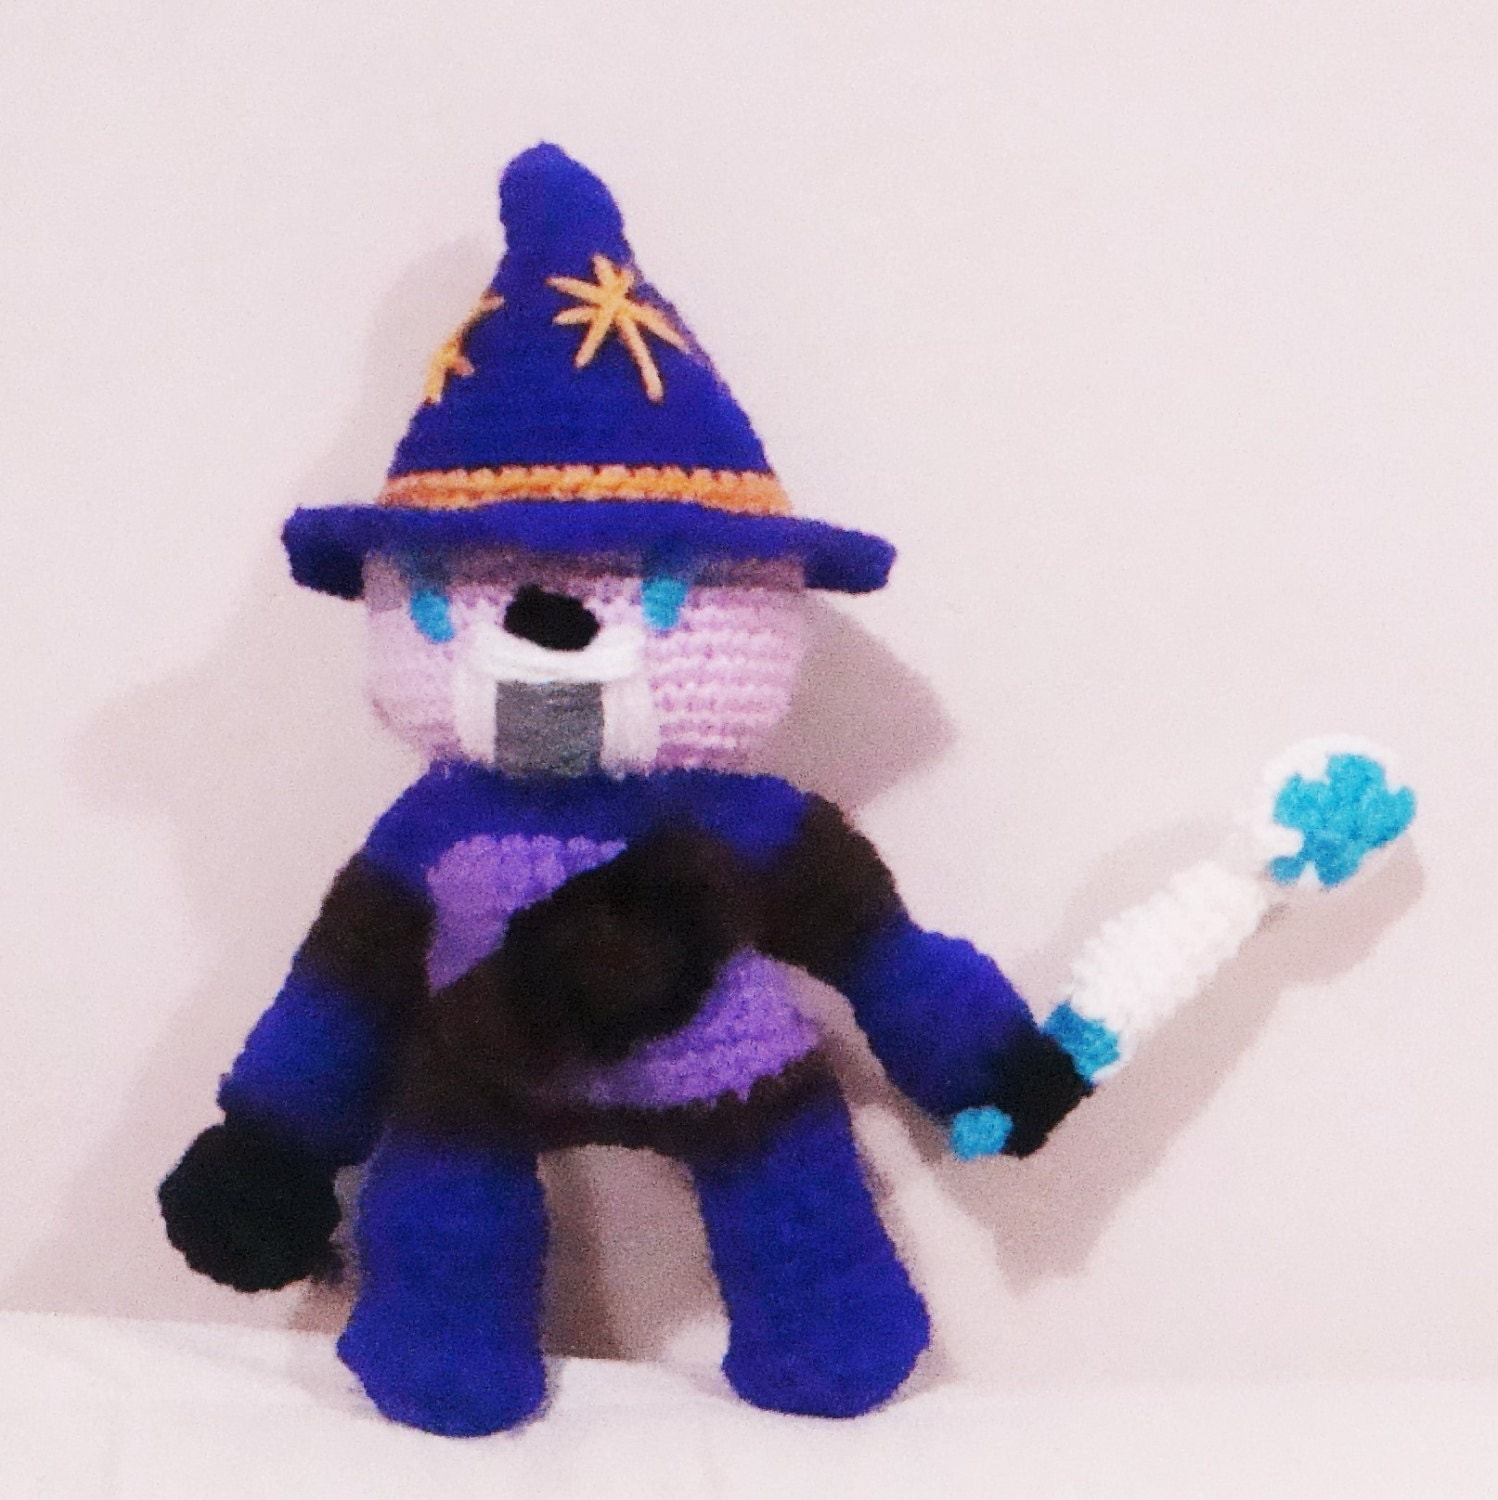 Sparlock Toy The Warrior Wizard Handmade Kids Gifts for boys Toy